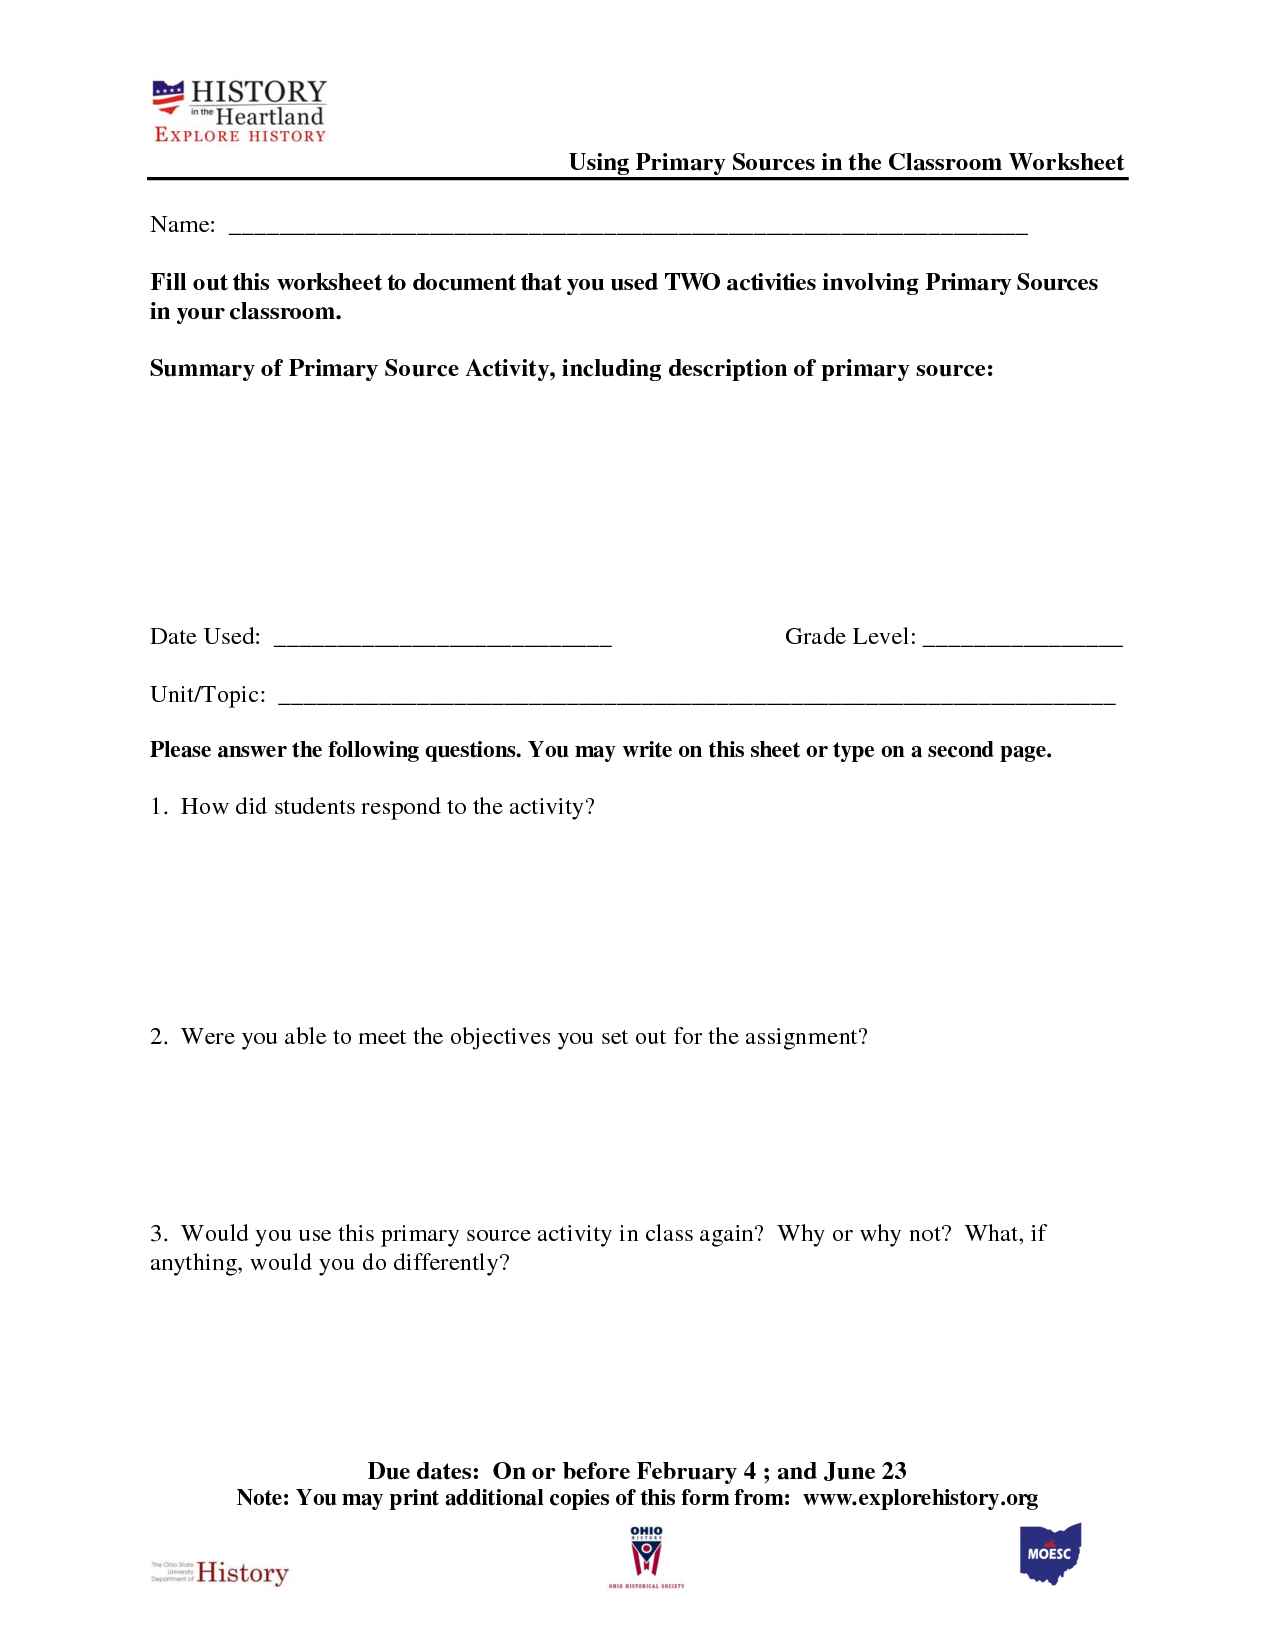 17 Best Images of Primary Vs Secondary Succession Worksheet  Primary and Secondary Succession